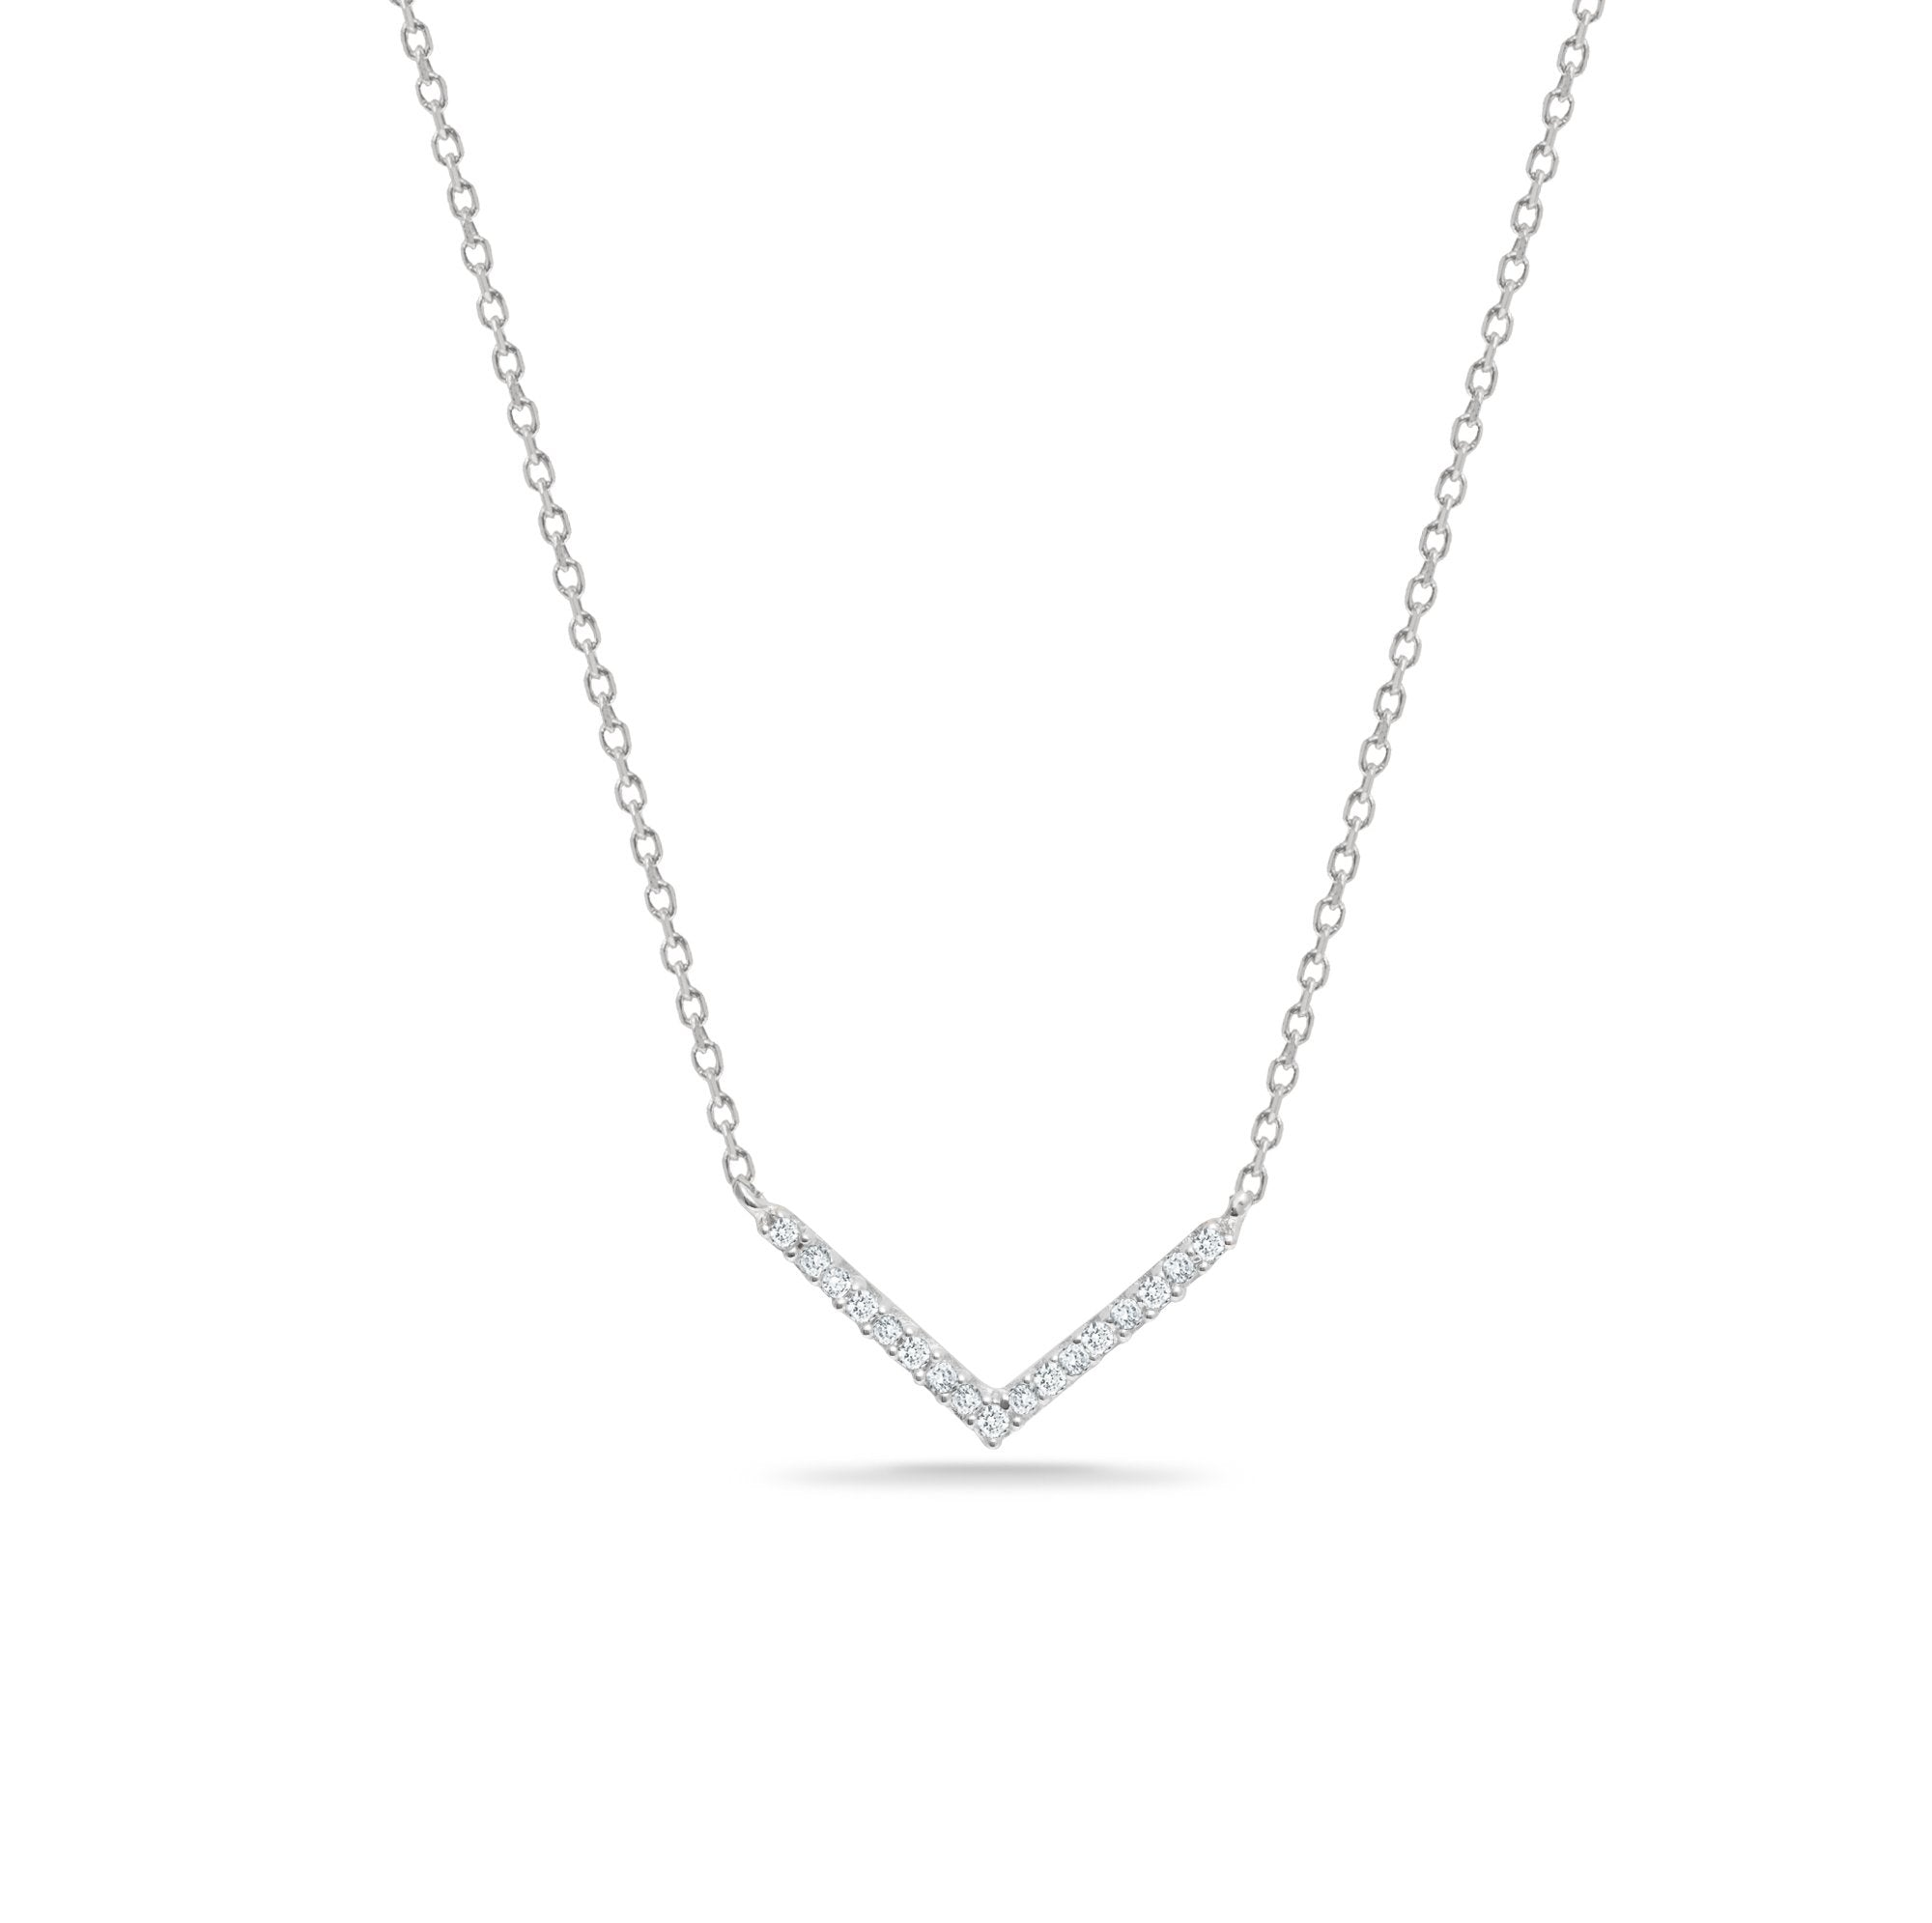 Adina Reyter Tiny Pavé V Necklace